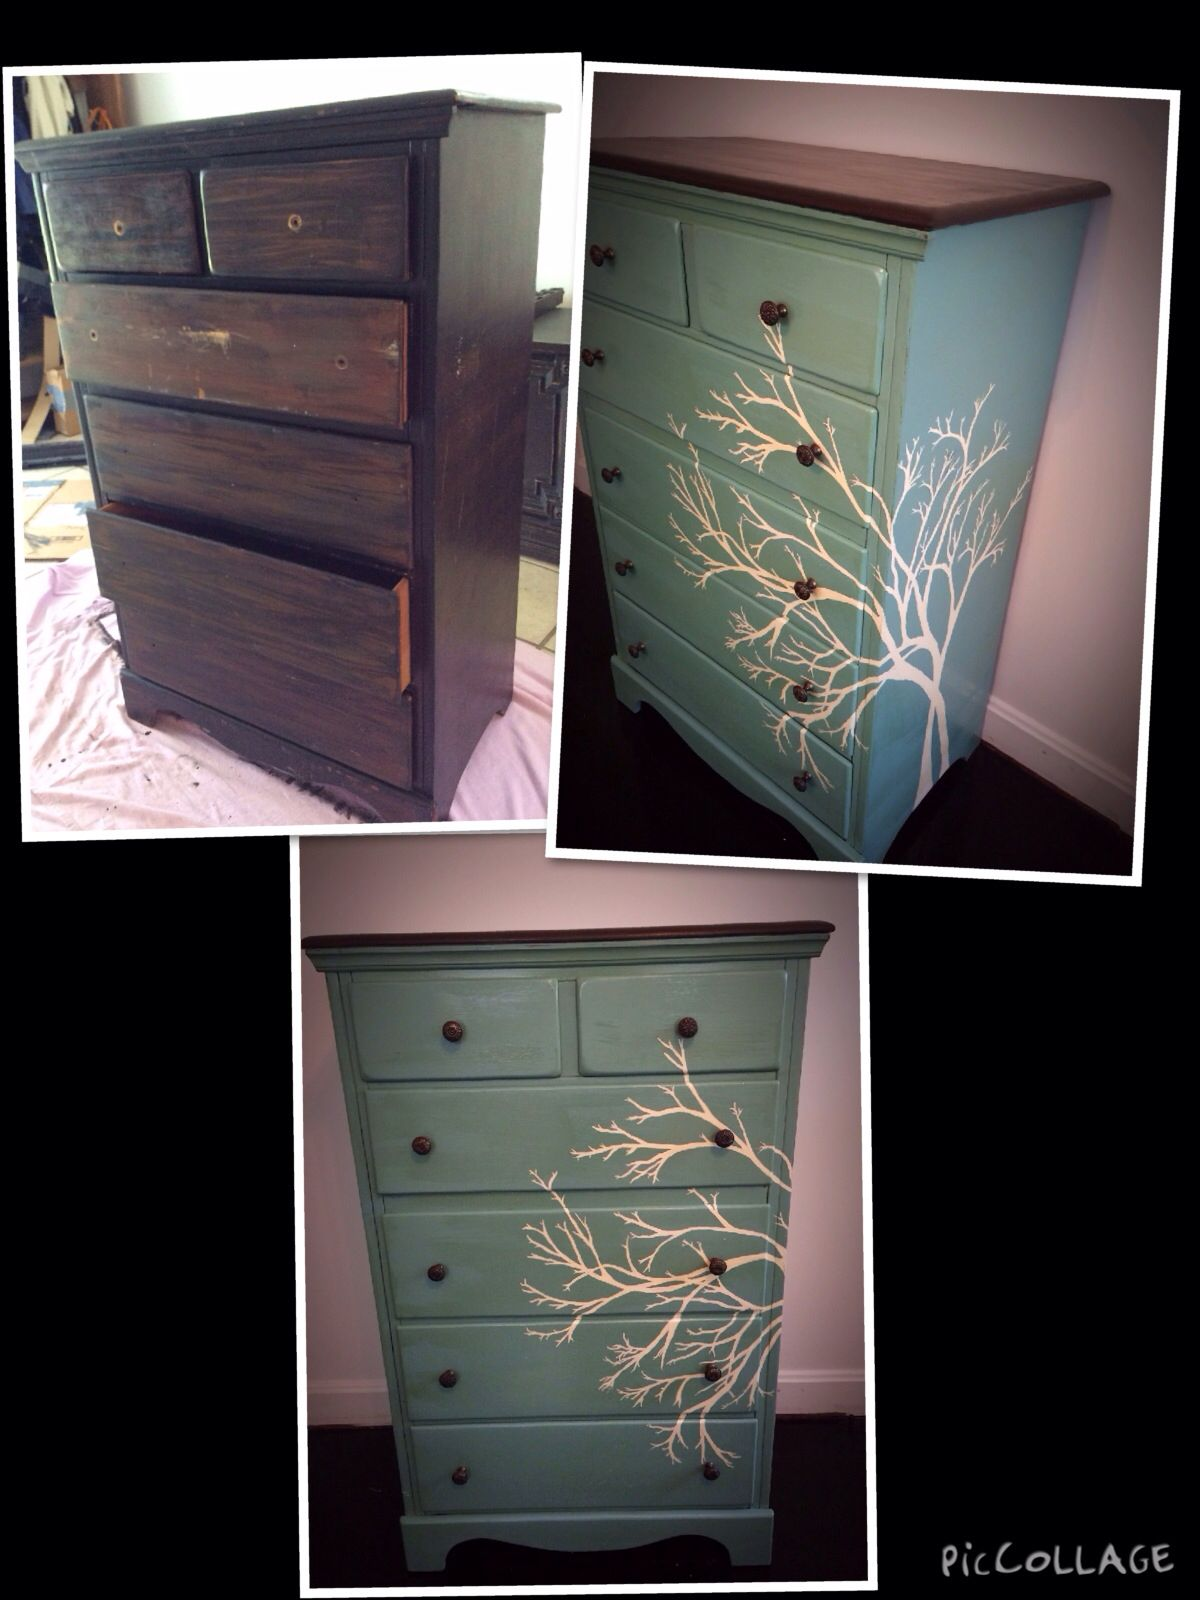 fixed up this old solid wood dresser they donu0027t even make furniture like